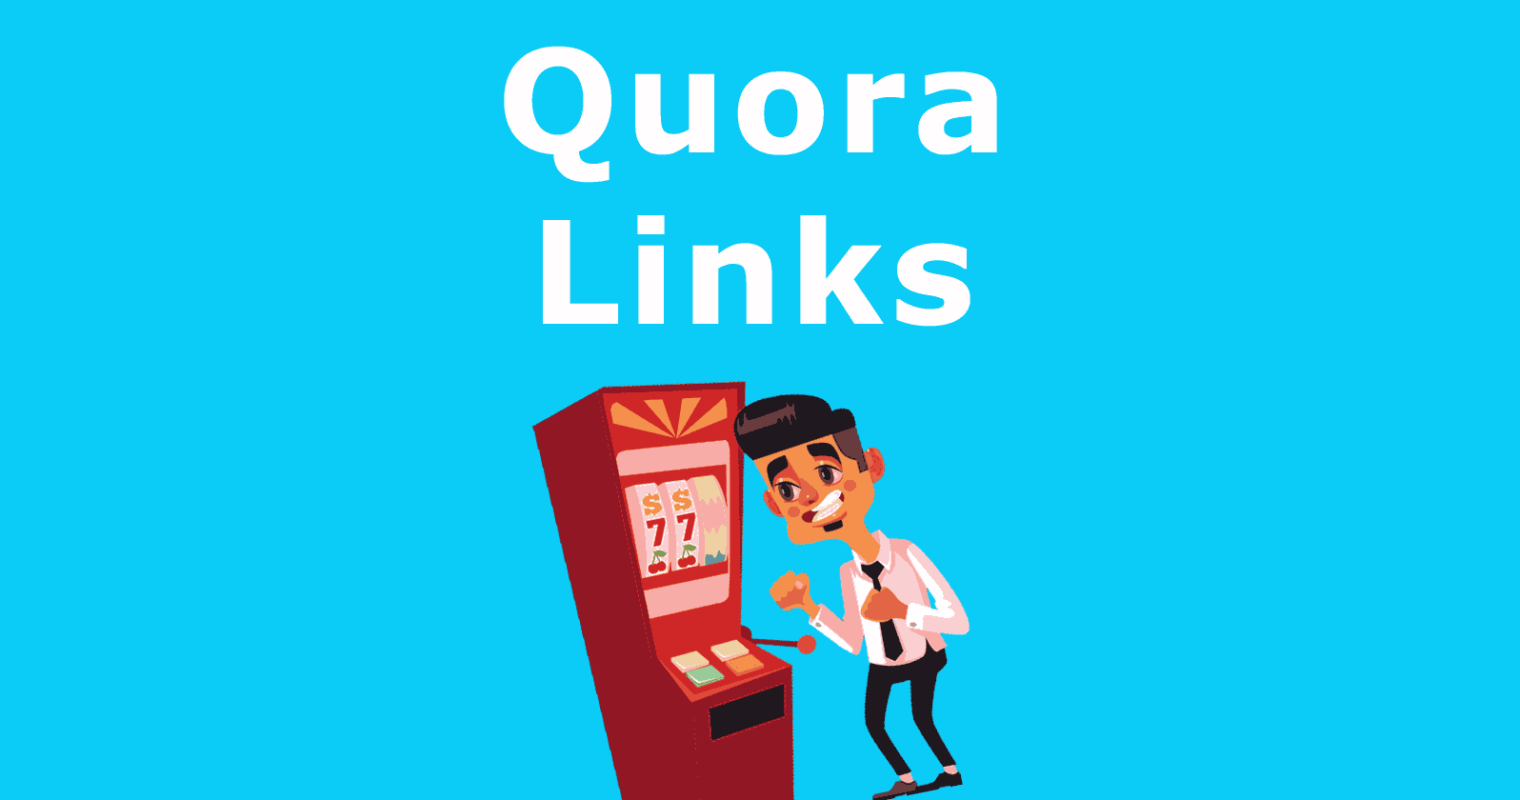 Google on Using Quora for Links